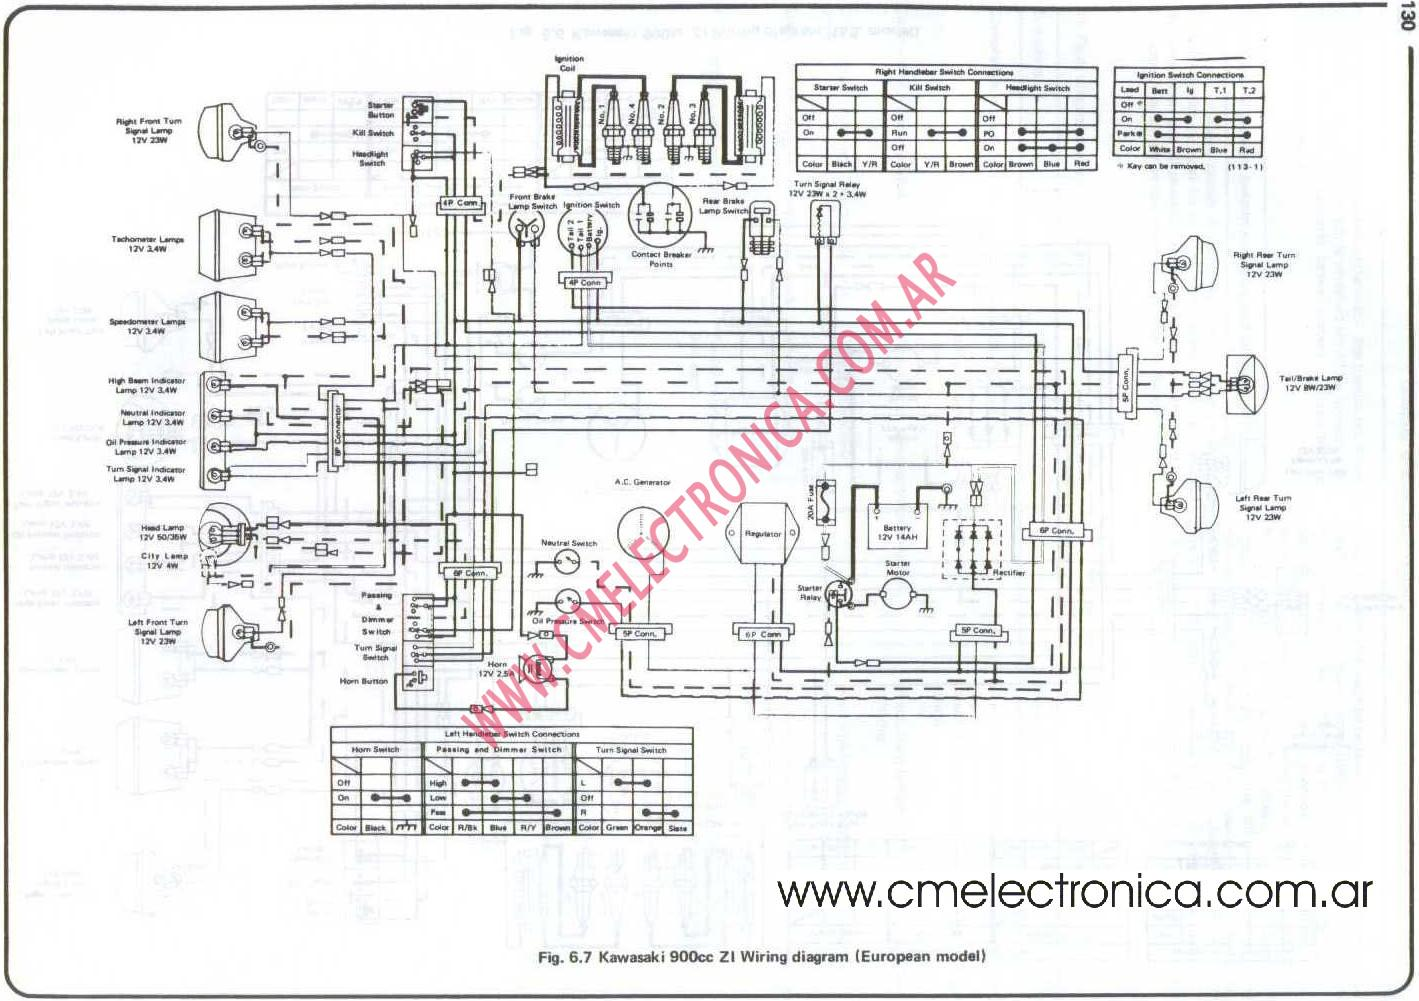 Z1 Wiring Diagram 17 Images Diagrams Kawasaki Kz650 900 Schematic The Readingrat Net 1100 Turbo At